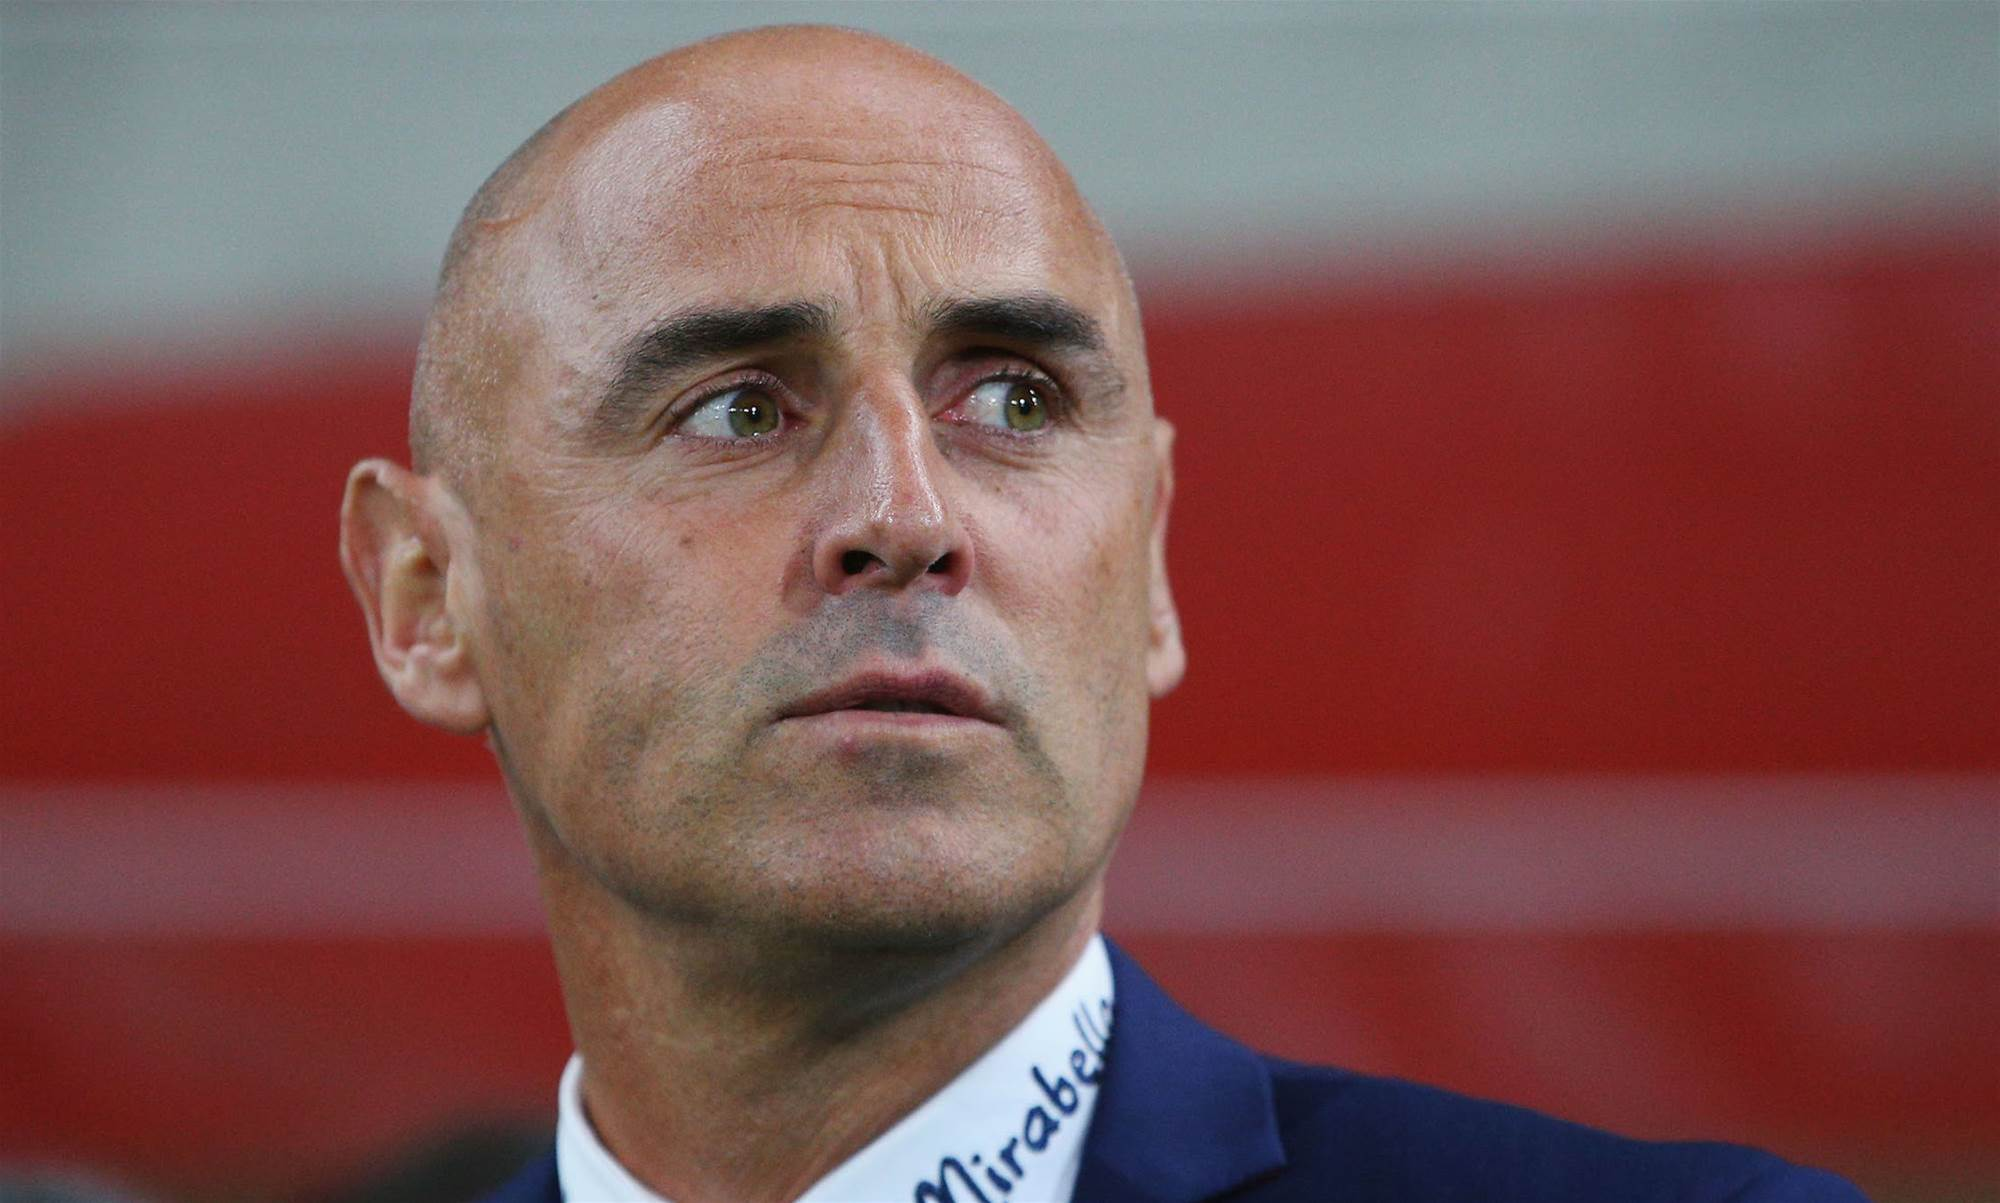 Muscat: First to four titles is no motivation